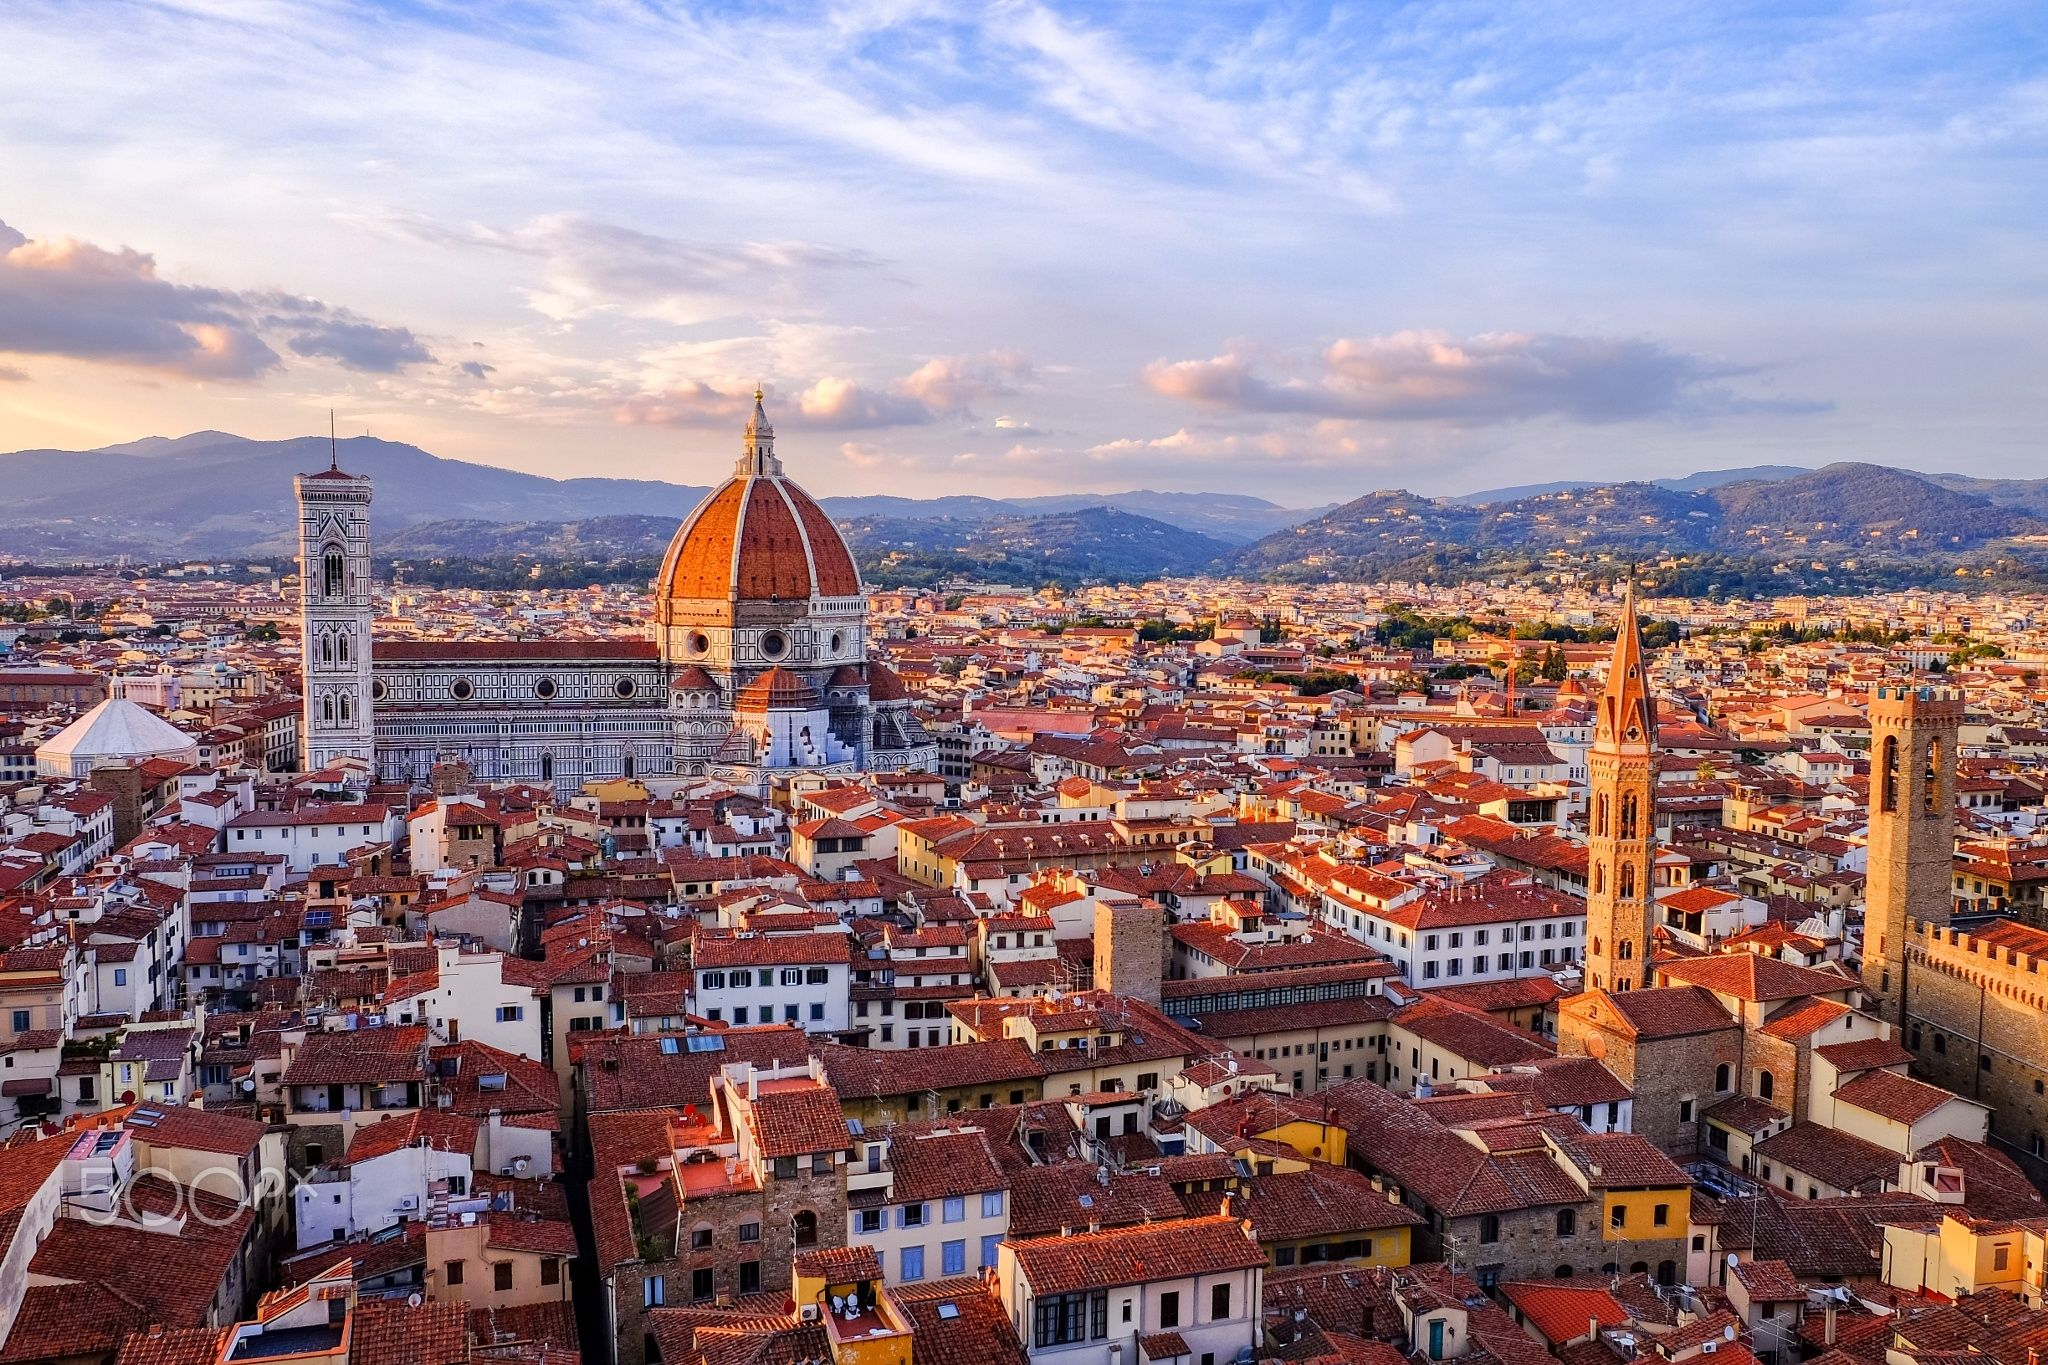 Bella - Florence at sunset, from the top of the Palazzo Vecchio. With a priviledged view of the Duomo.